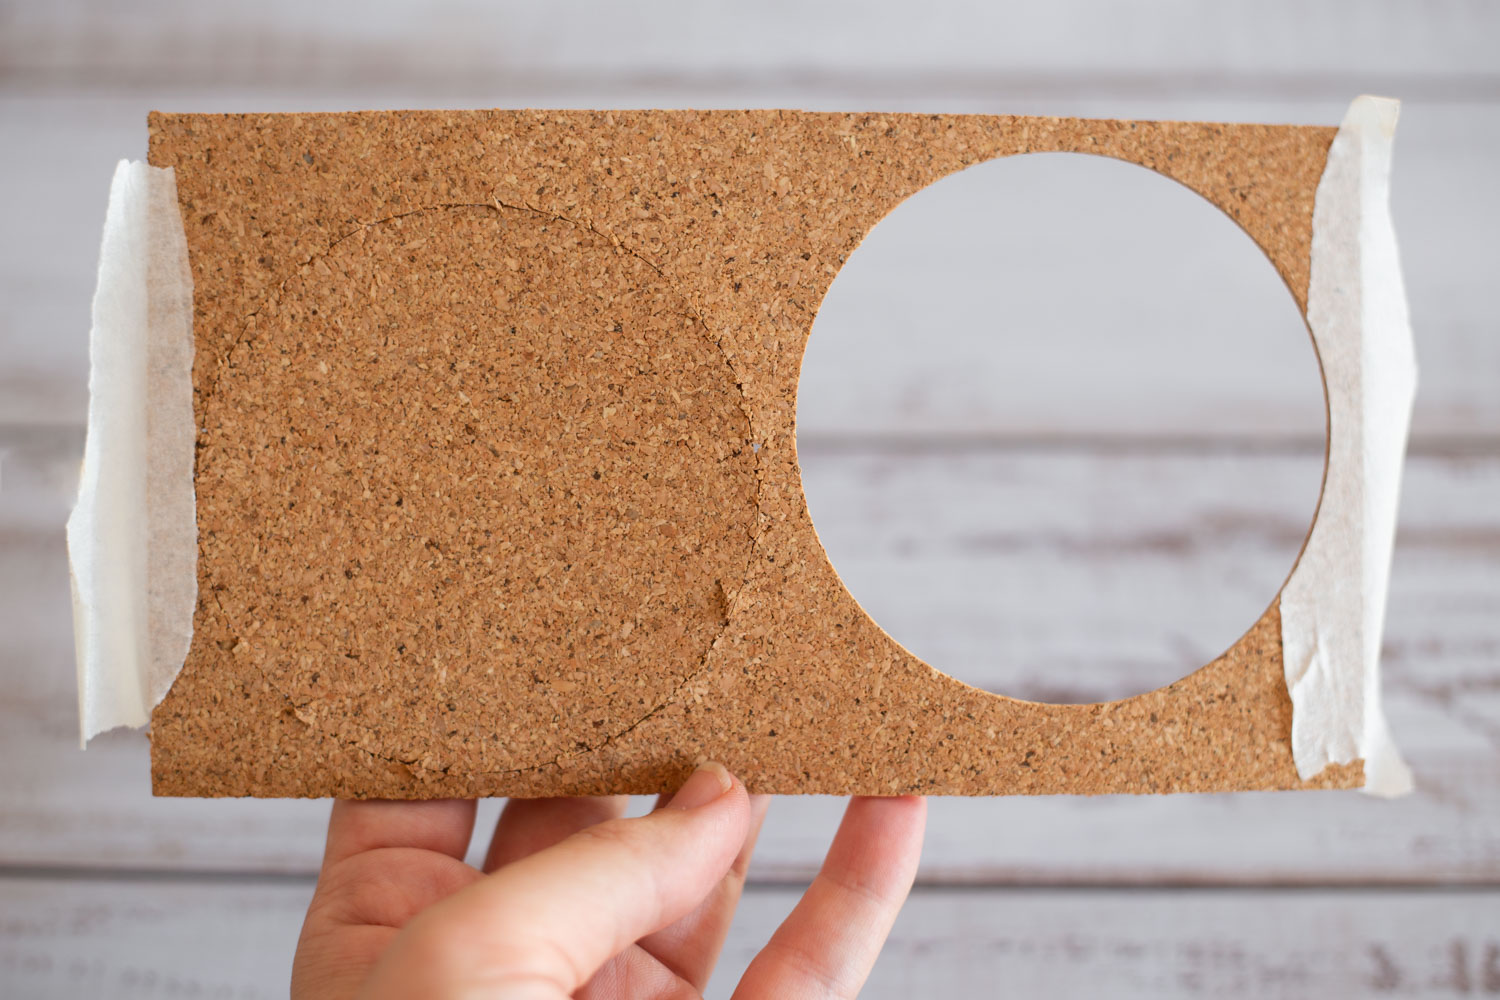 Free SVG pattern // Easily cut cork to make DIY coasters with the Cricut Maker